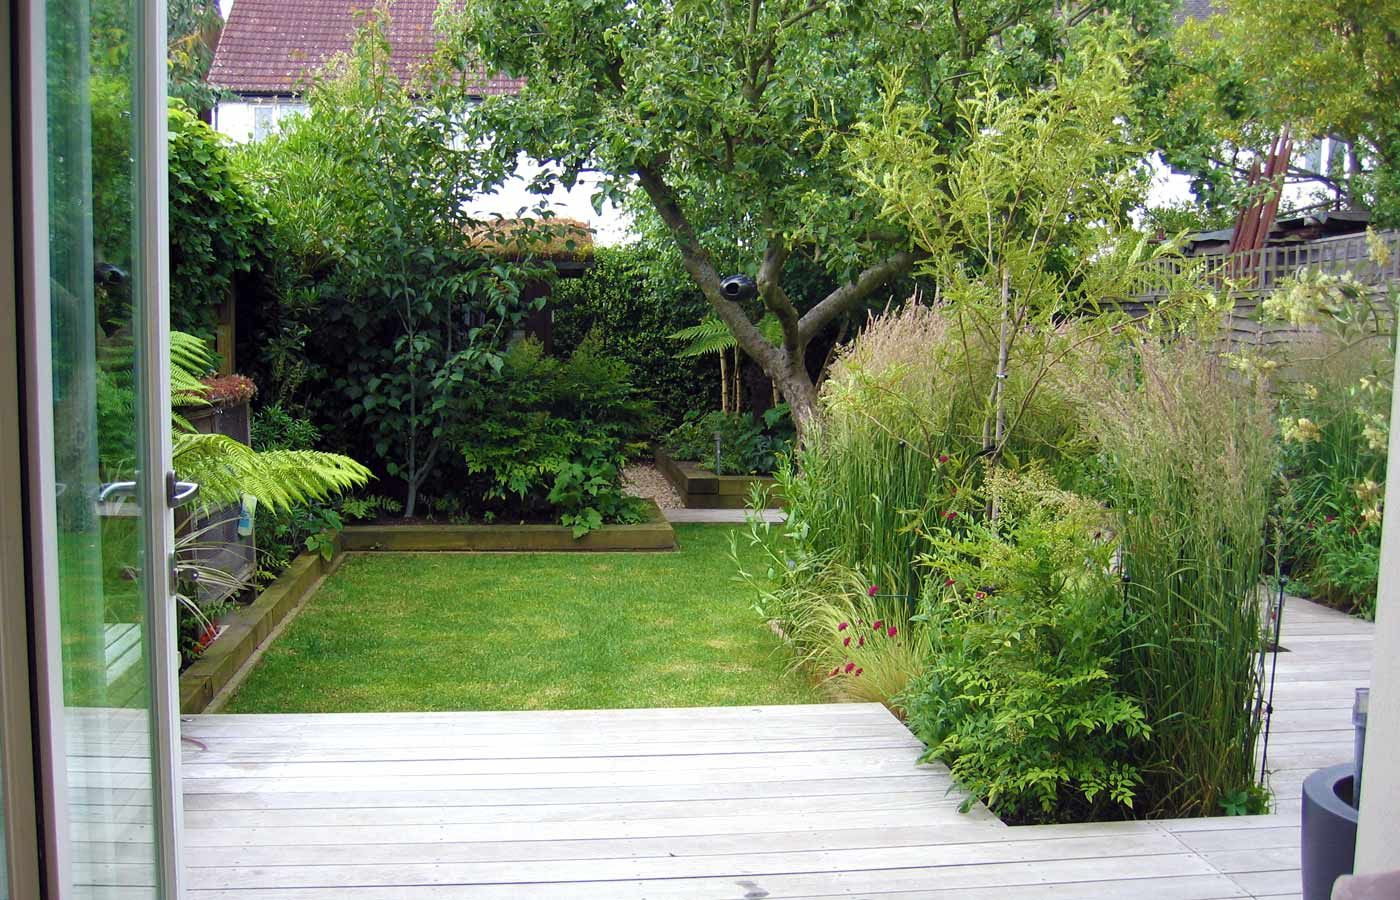 Small Trees For Lawn Lawn And Decing In Small North London